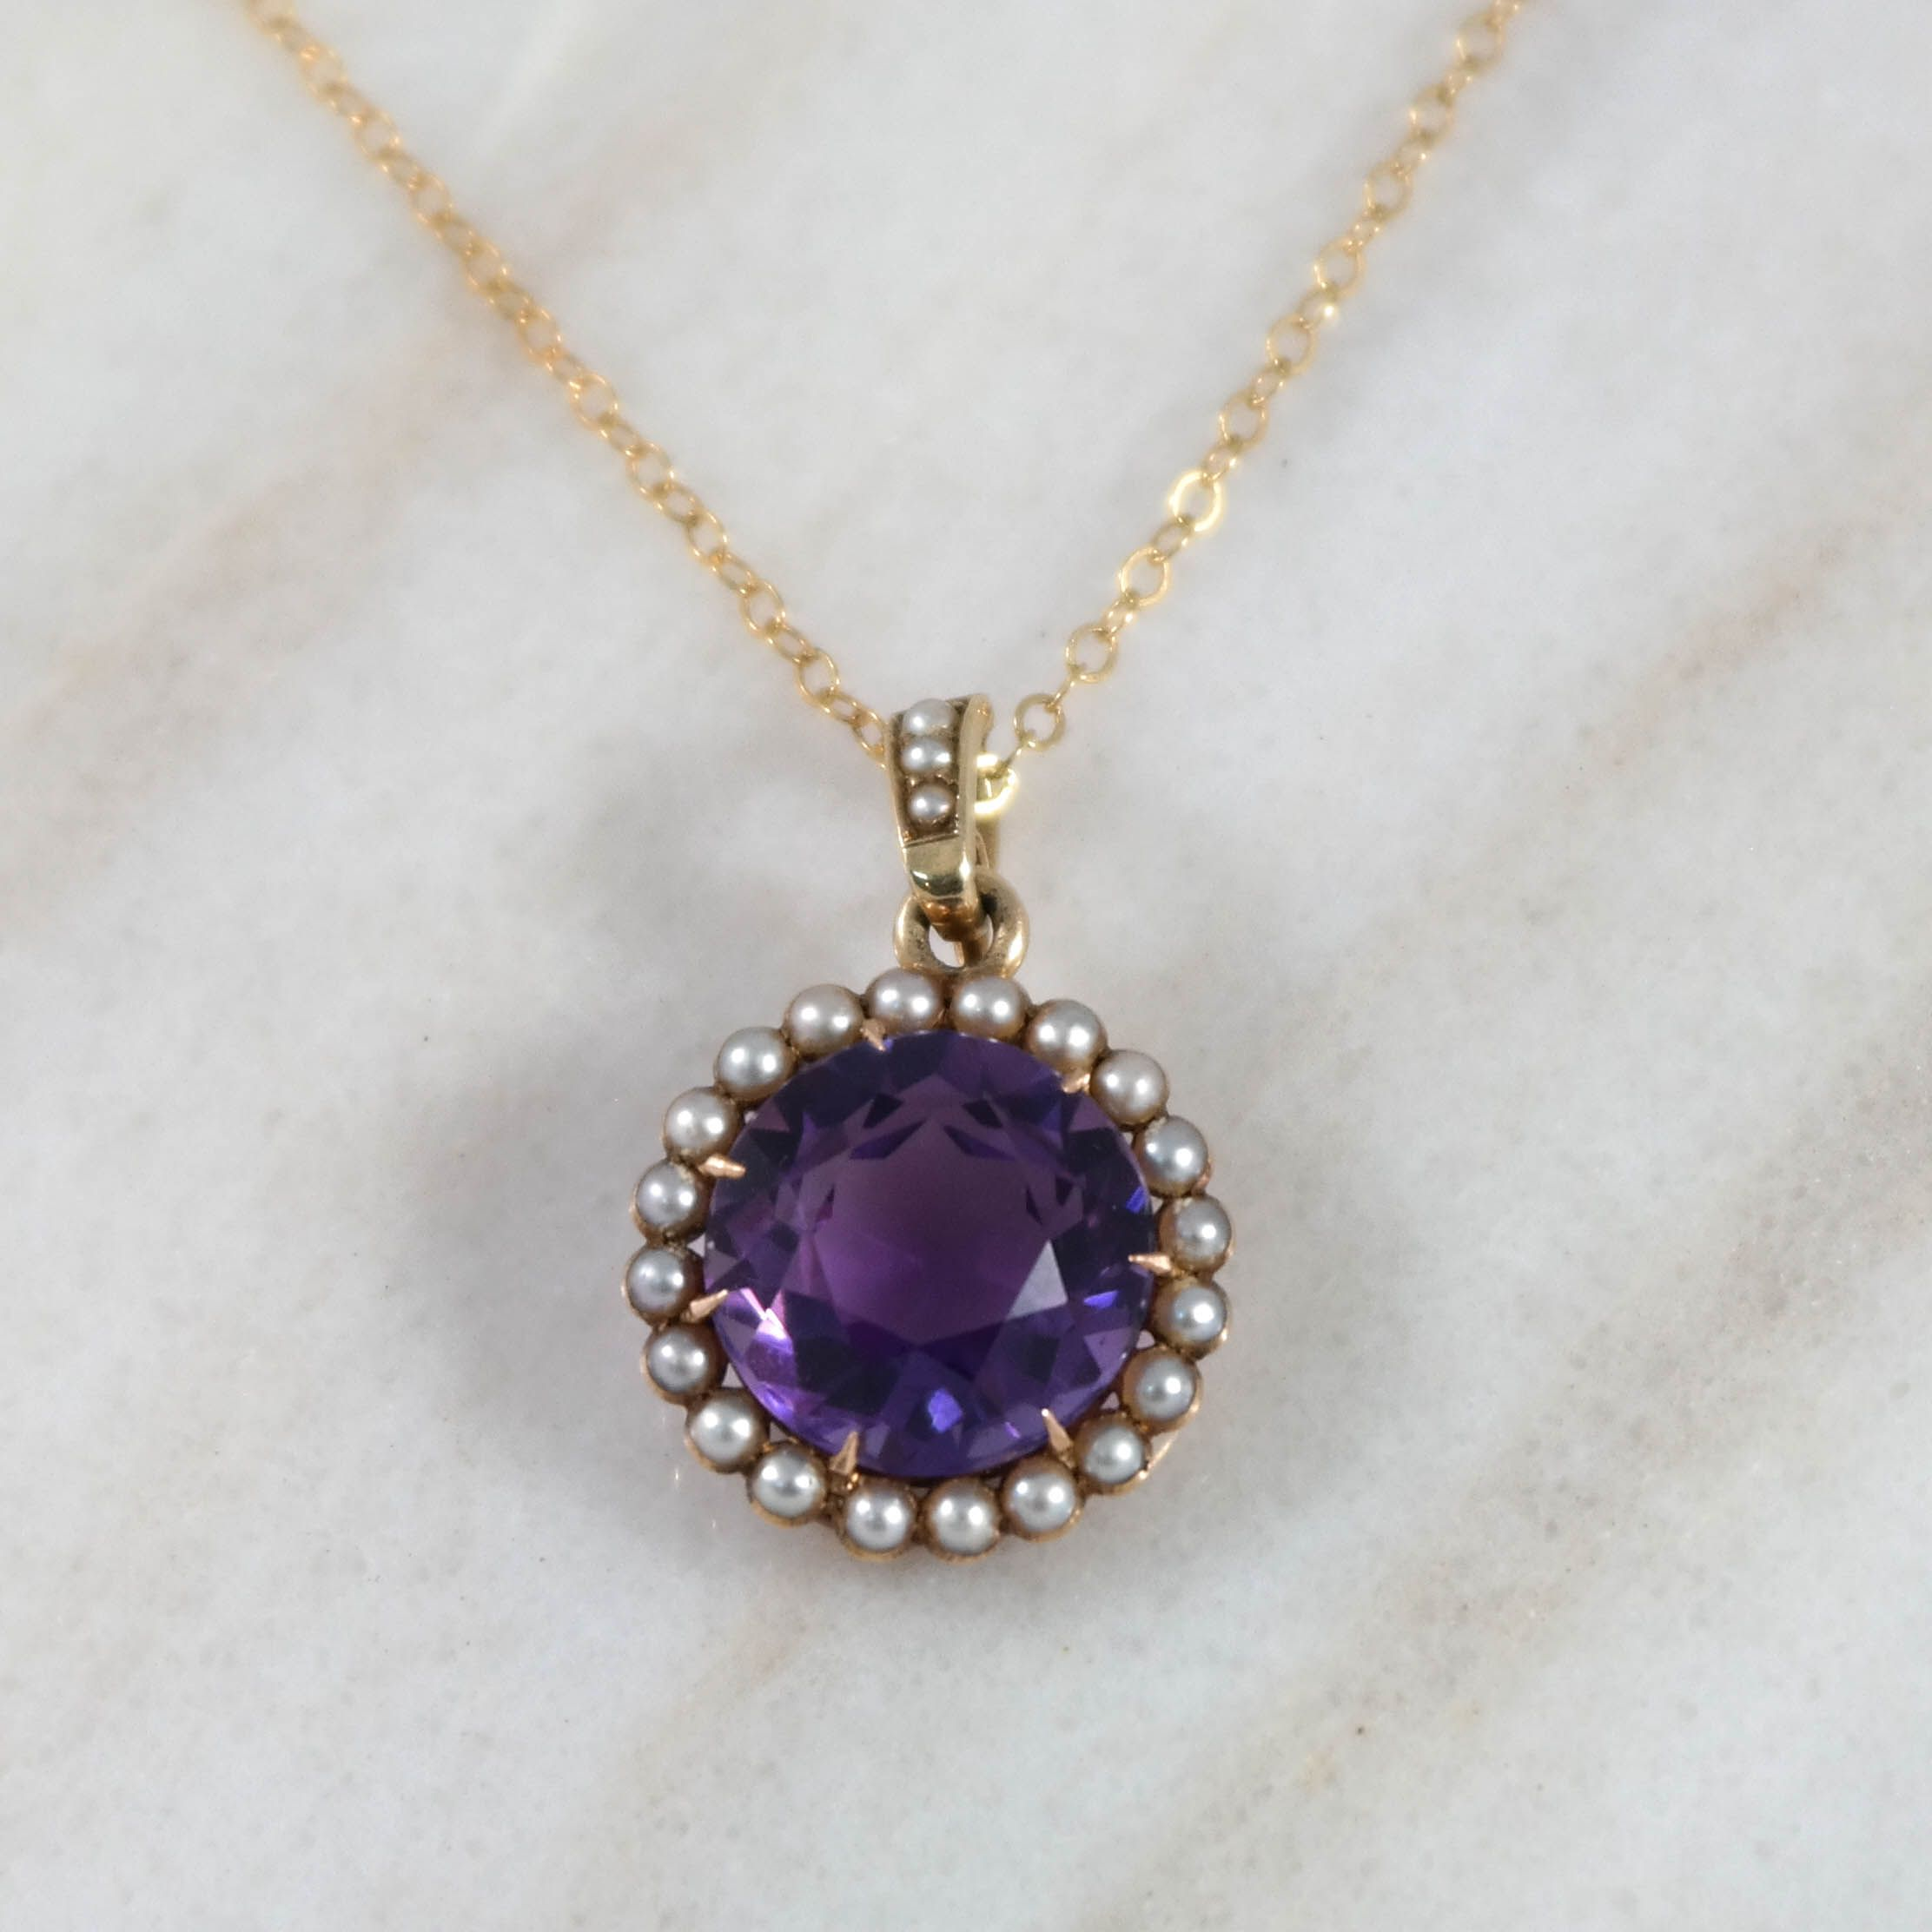 14K Yellow Gold Antique Amethyst and Pearl Pendant